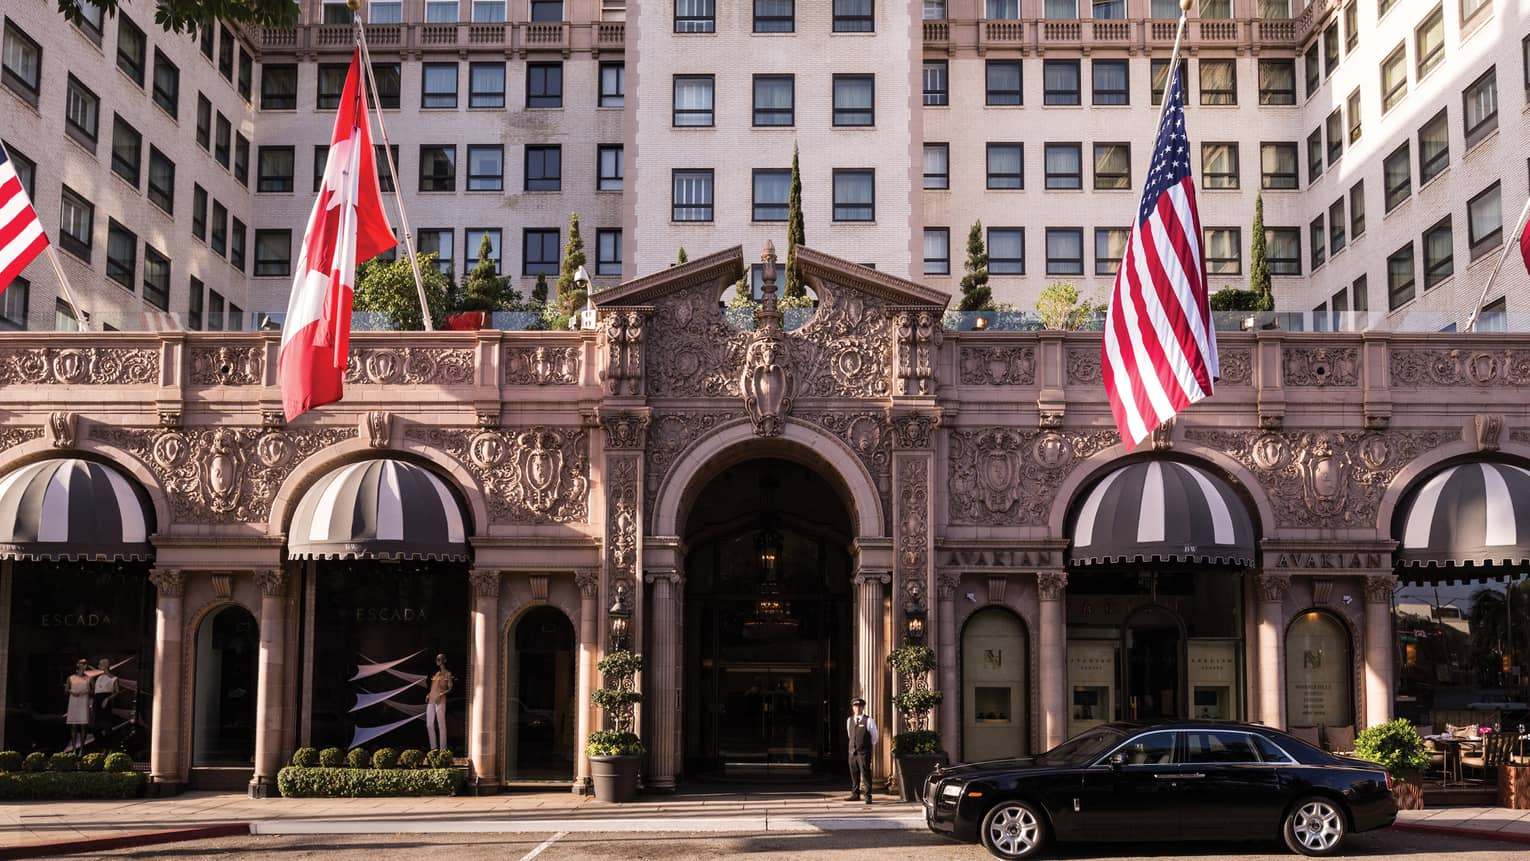 Beverly Wilshire, A Four Seasons Hotel grand front entrance with American, Canadian flags